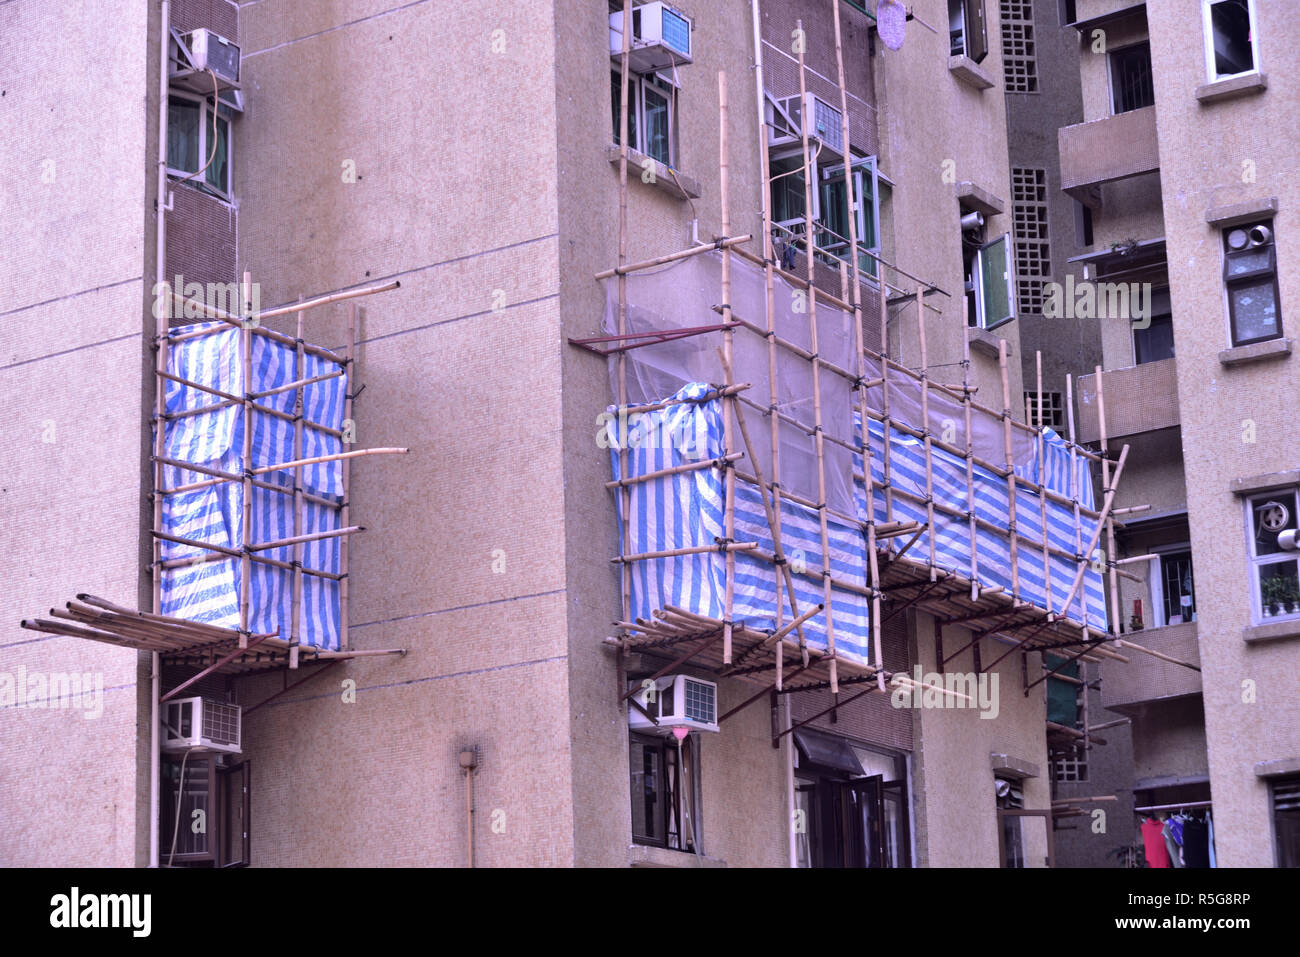 Bamboo scaffolding platforms mounted outside a building for repairing work - Stock Image